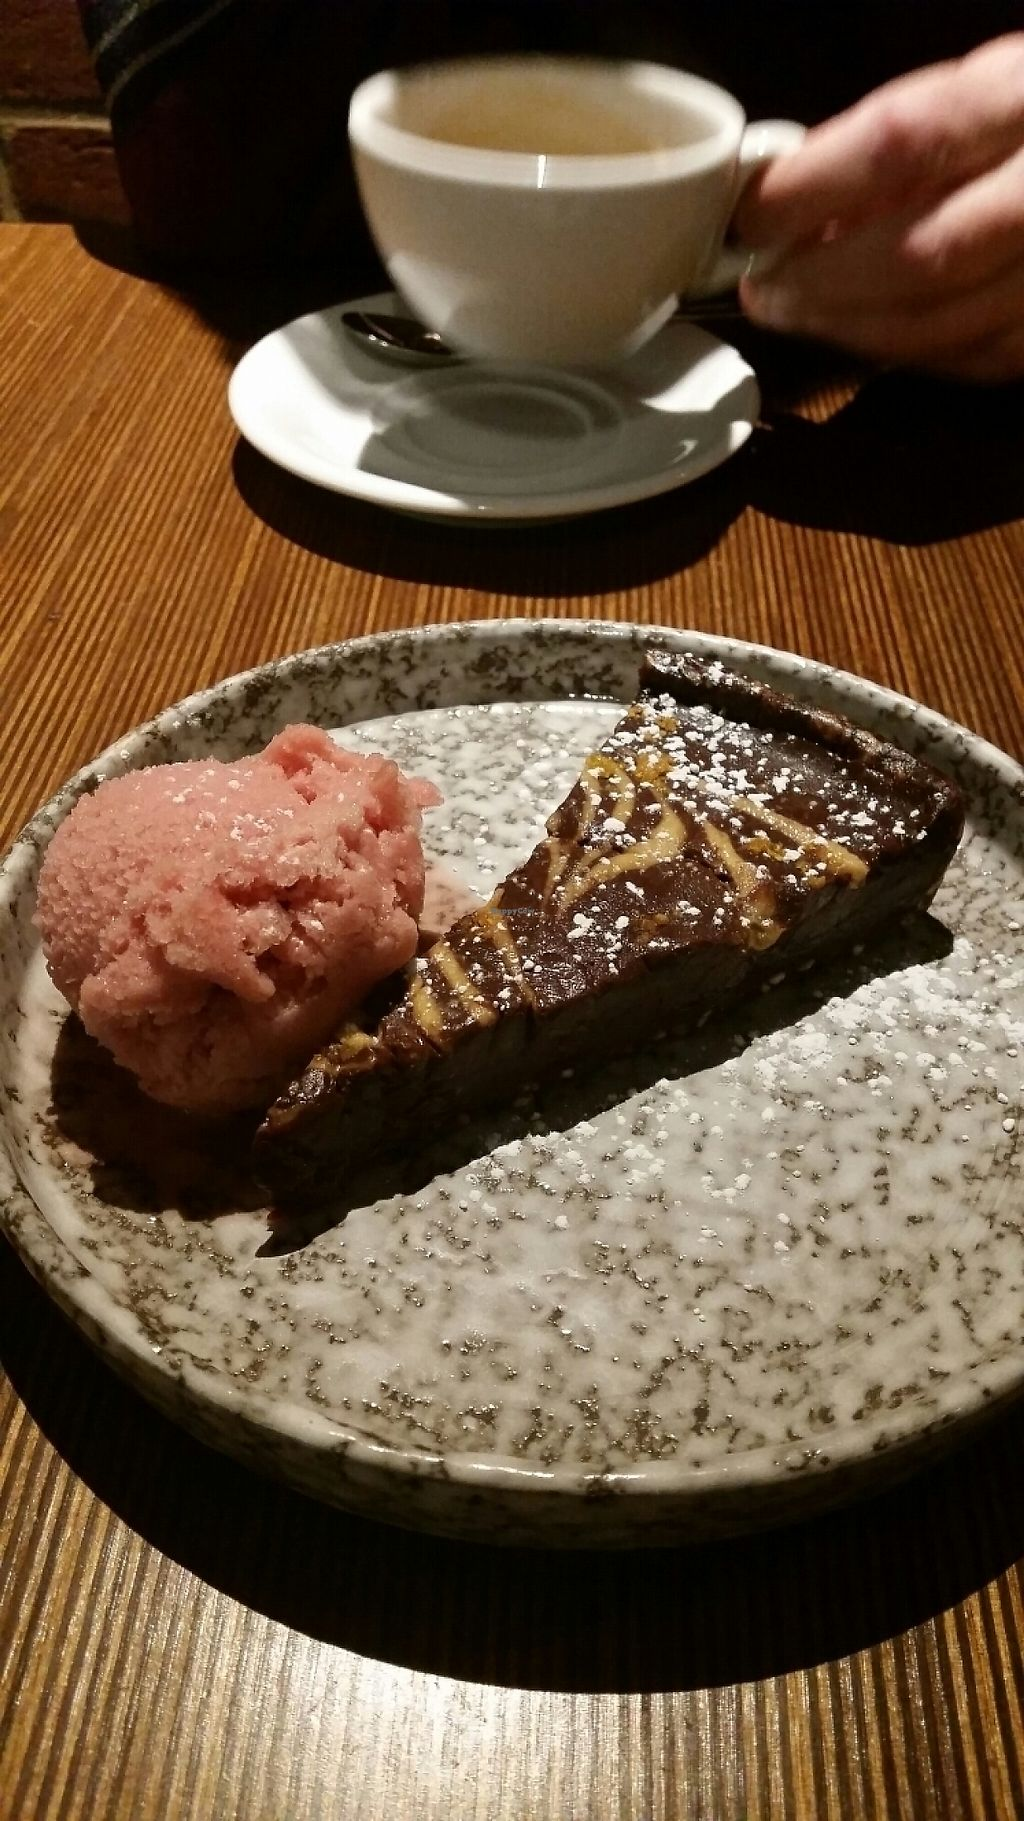 "Photo of Ask  by <a href=""/members/profile/ChantalW"">ChantalW</a> <br/>Vegan chocolate and orange torte with blood orange sorbet <br/> May 19, 2017  - <a href='/contact/abuse/image/89124/260129'>Report</a>"